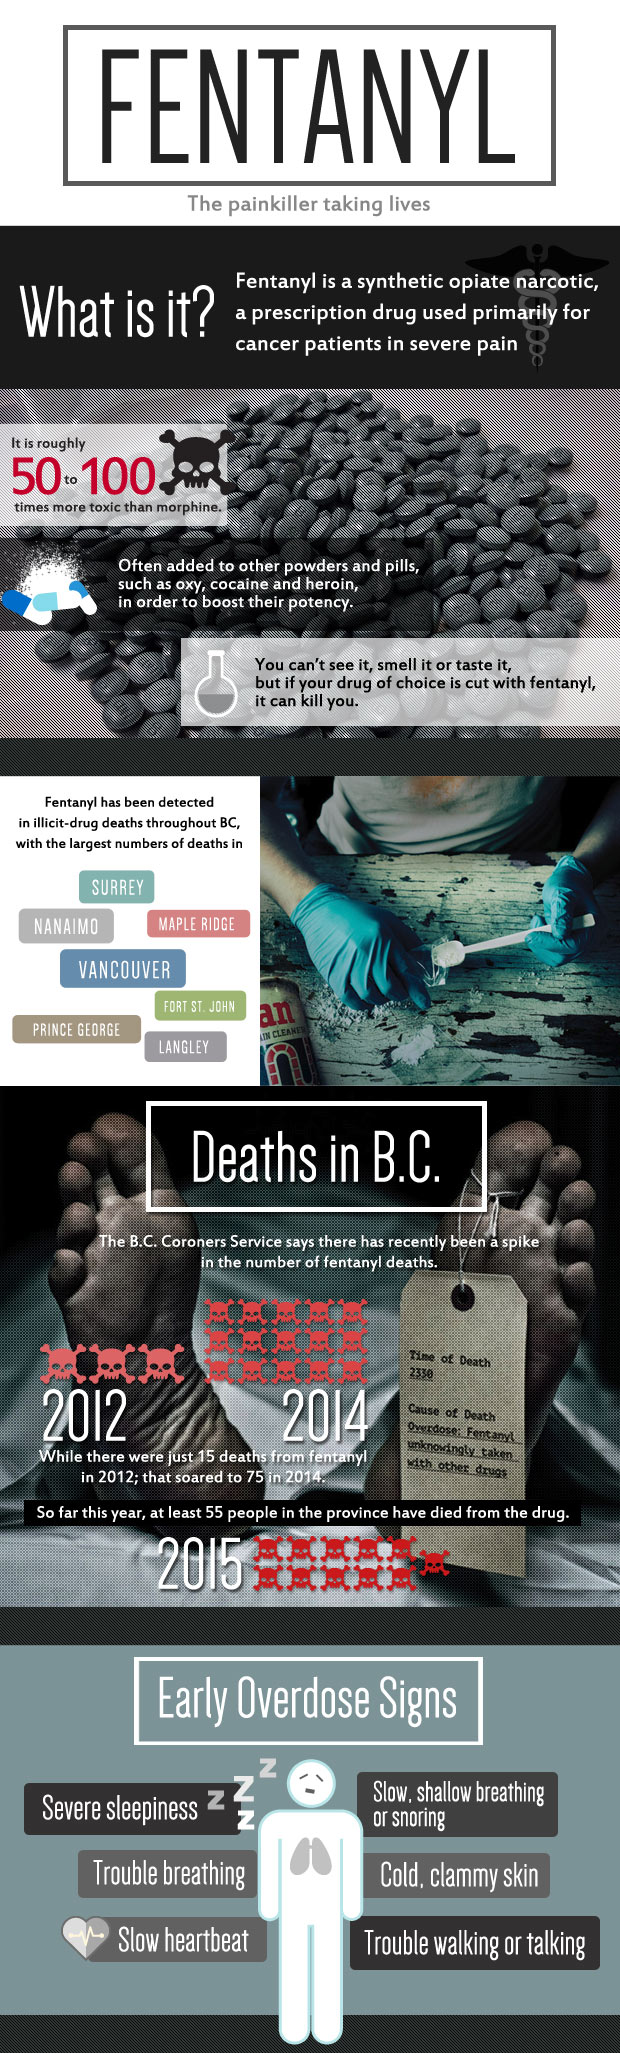 Infographic: Fentanyl, the painkiller taking lives